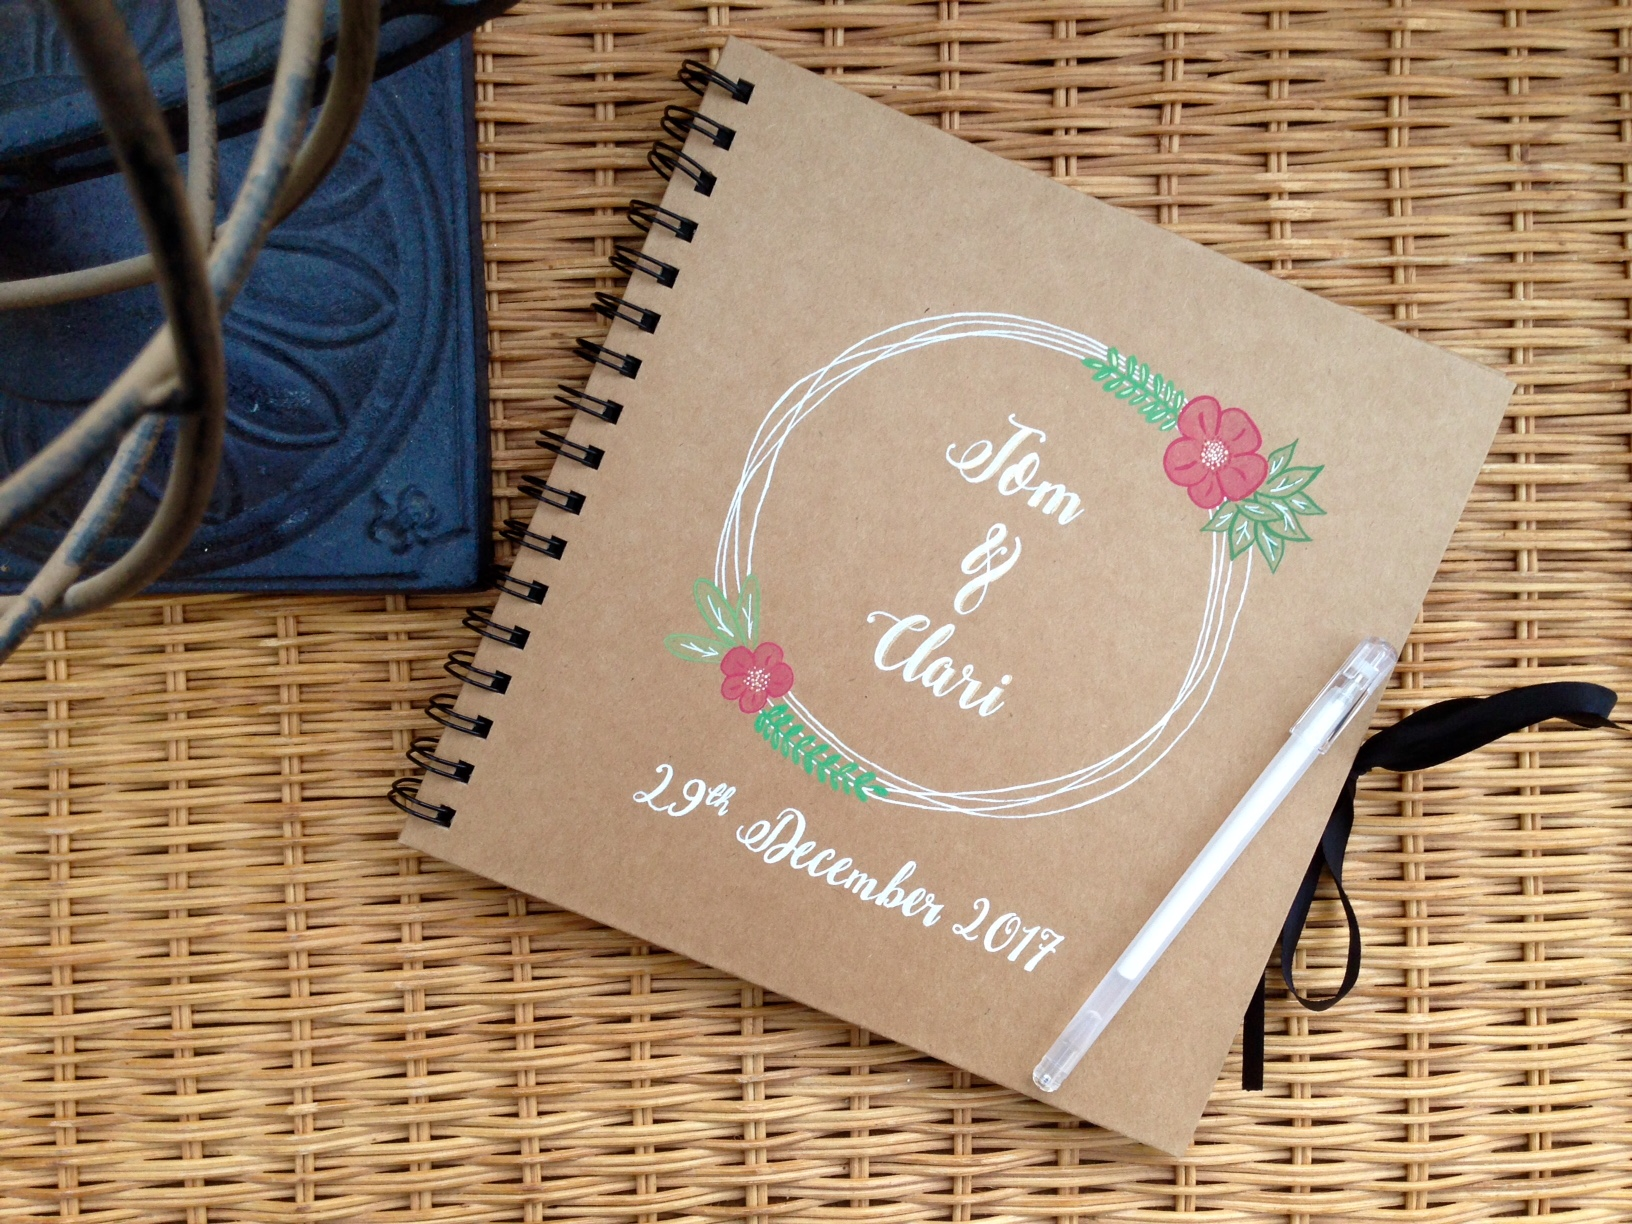 Colourful guest book 2.jpg